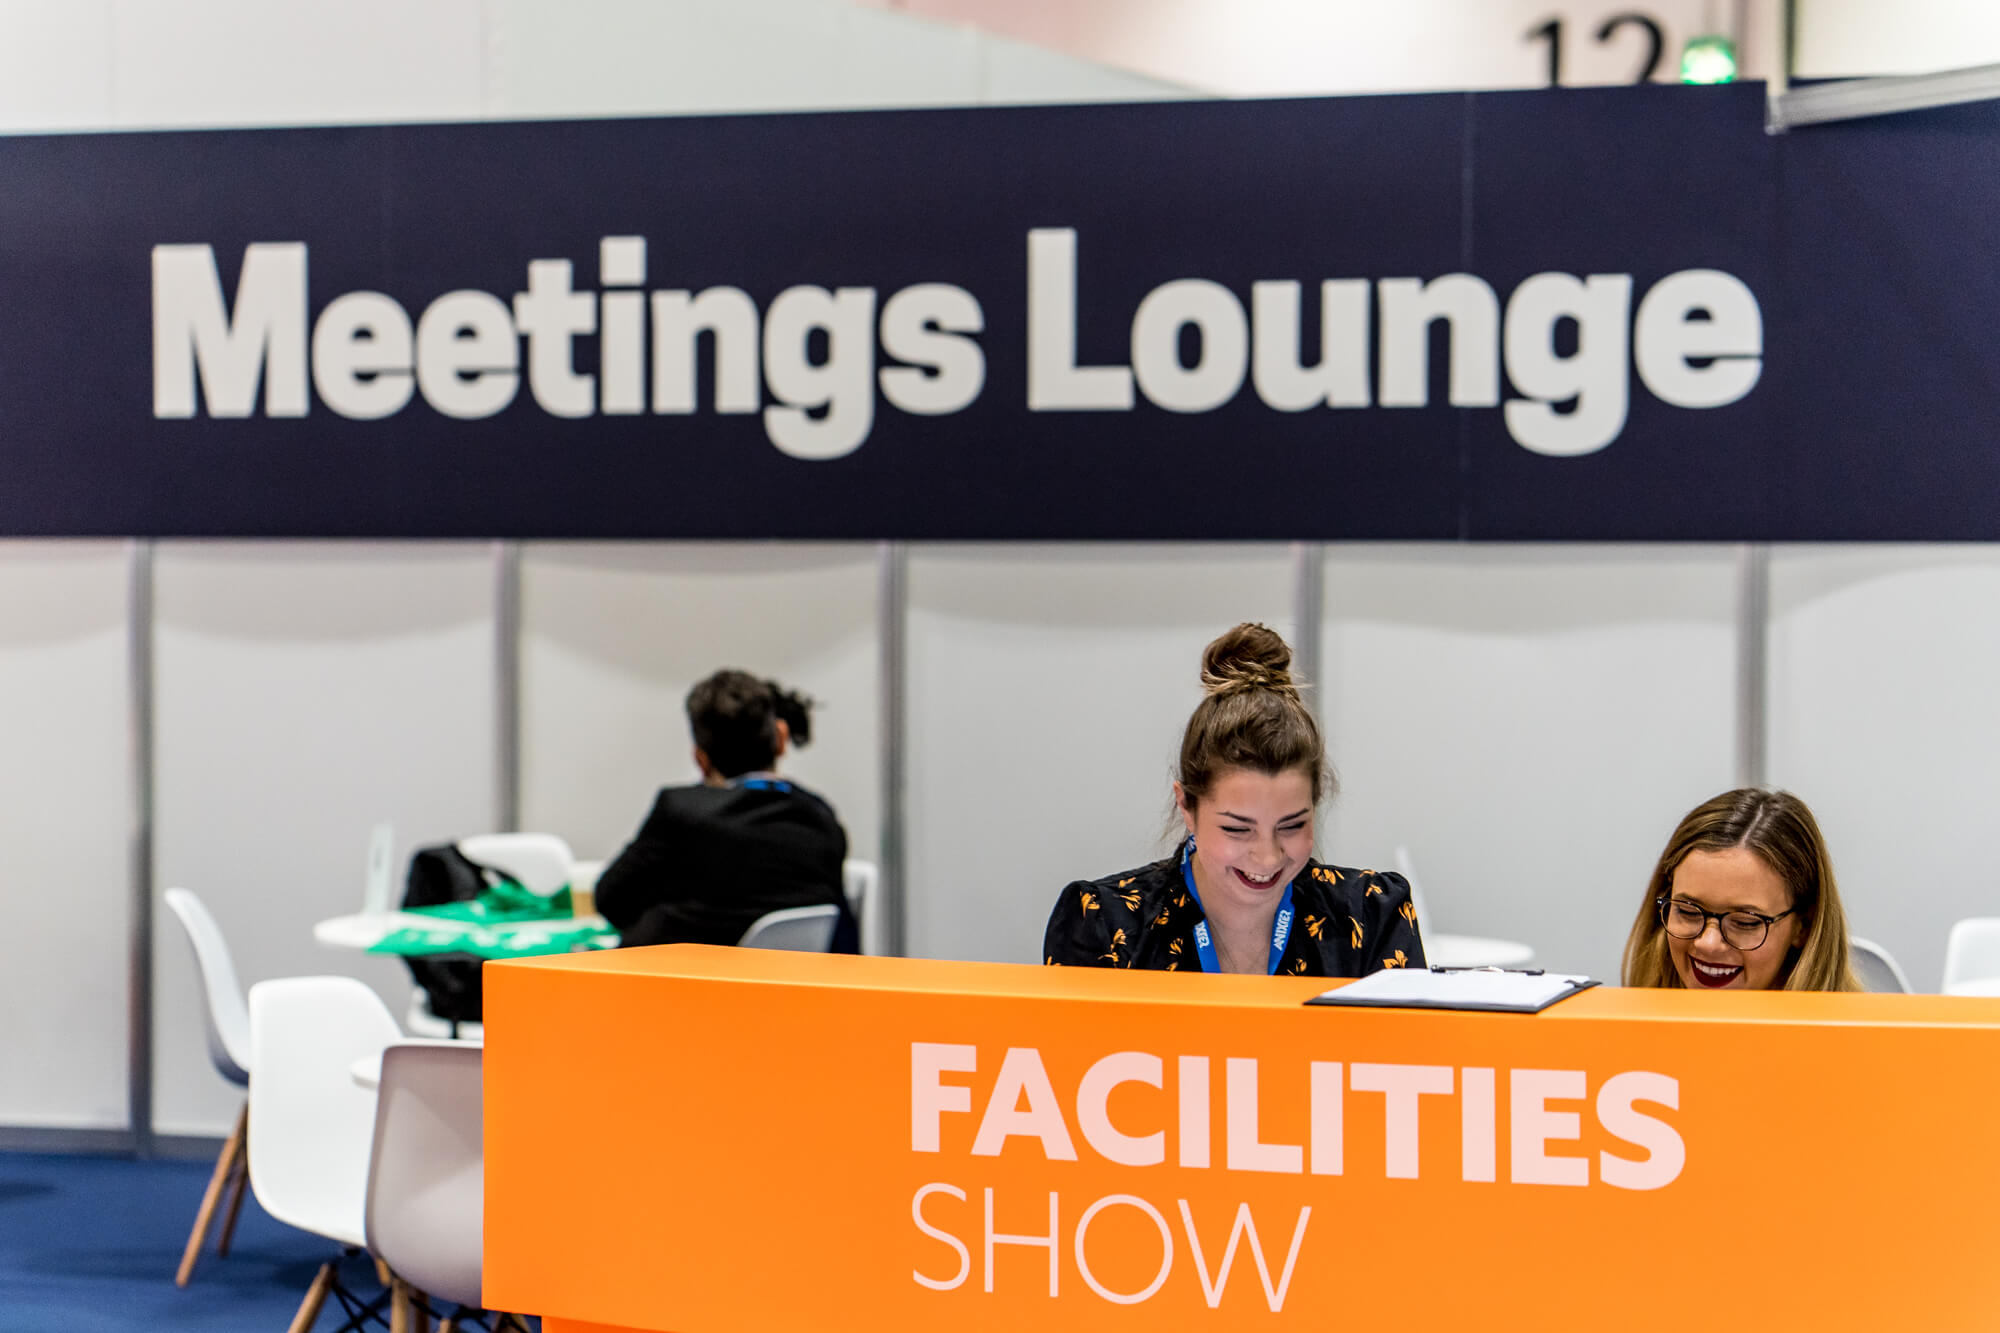 Two individuals on the meetings lounge desk at Facilties Show 2019